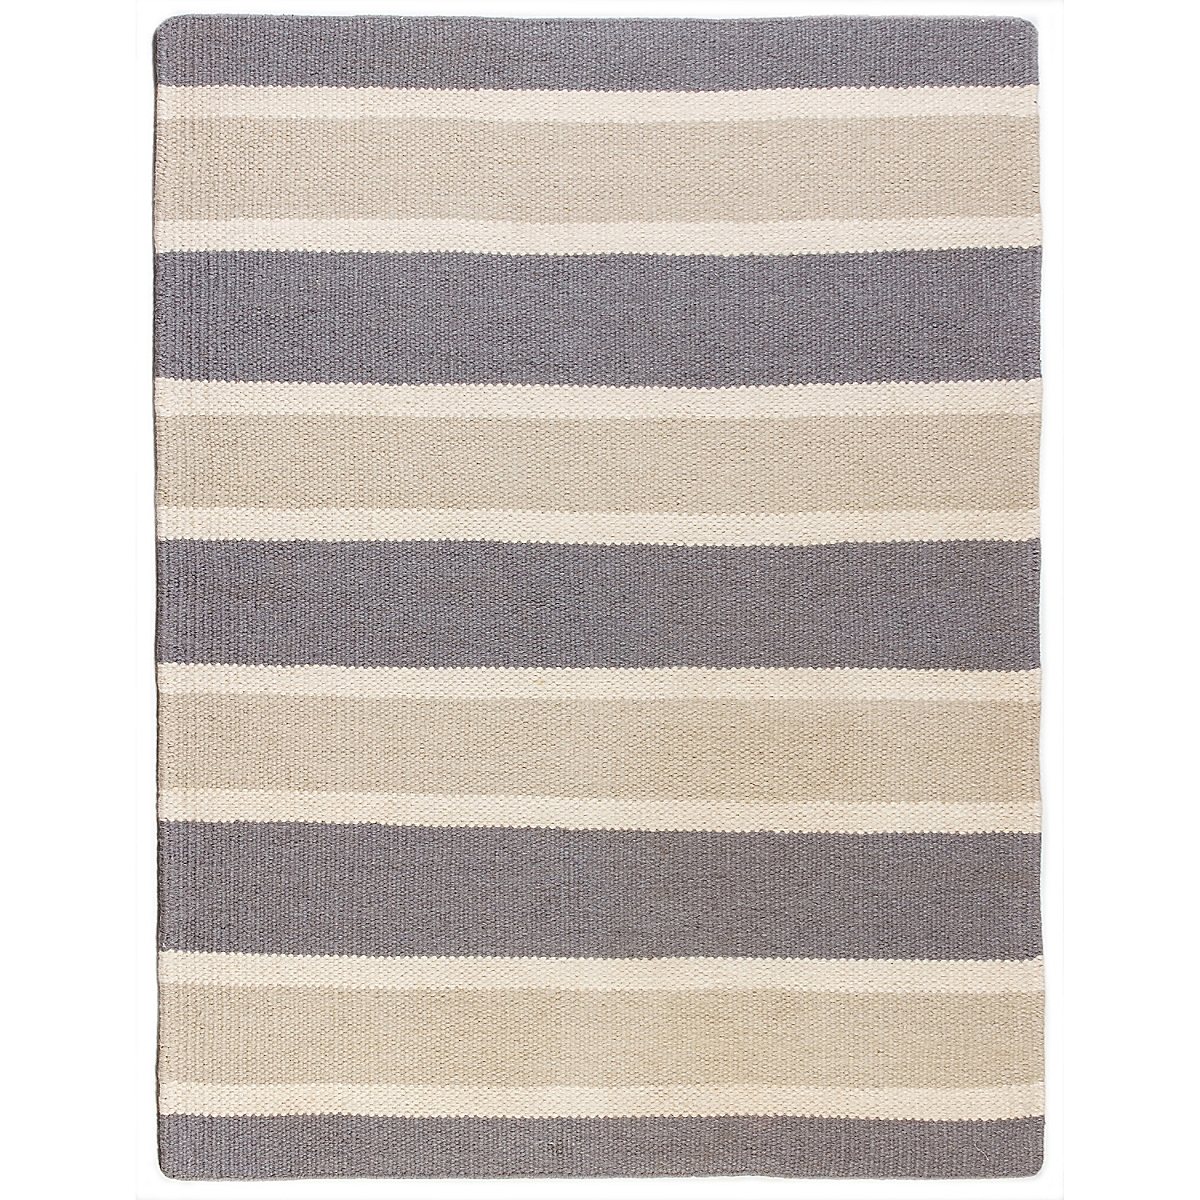 Smith Shoal Wool Berber Striped Rug